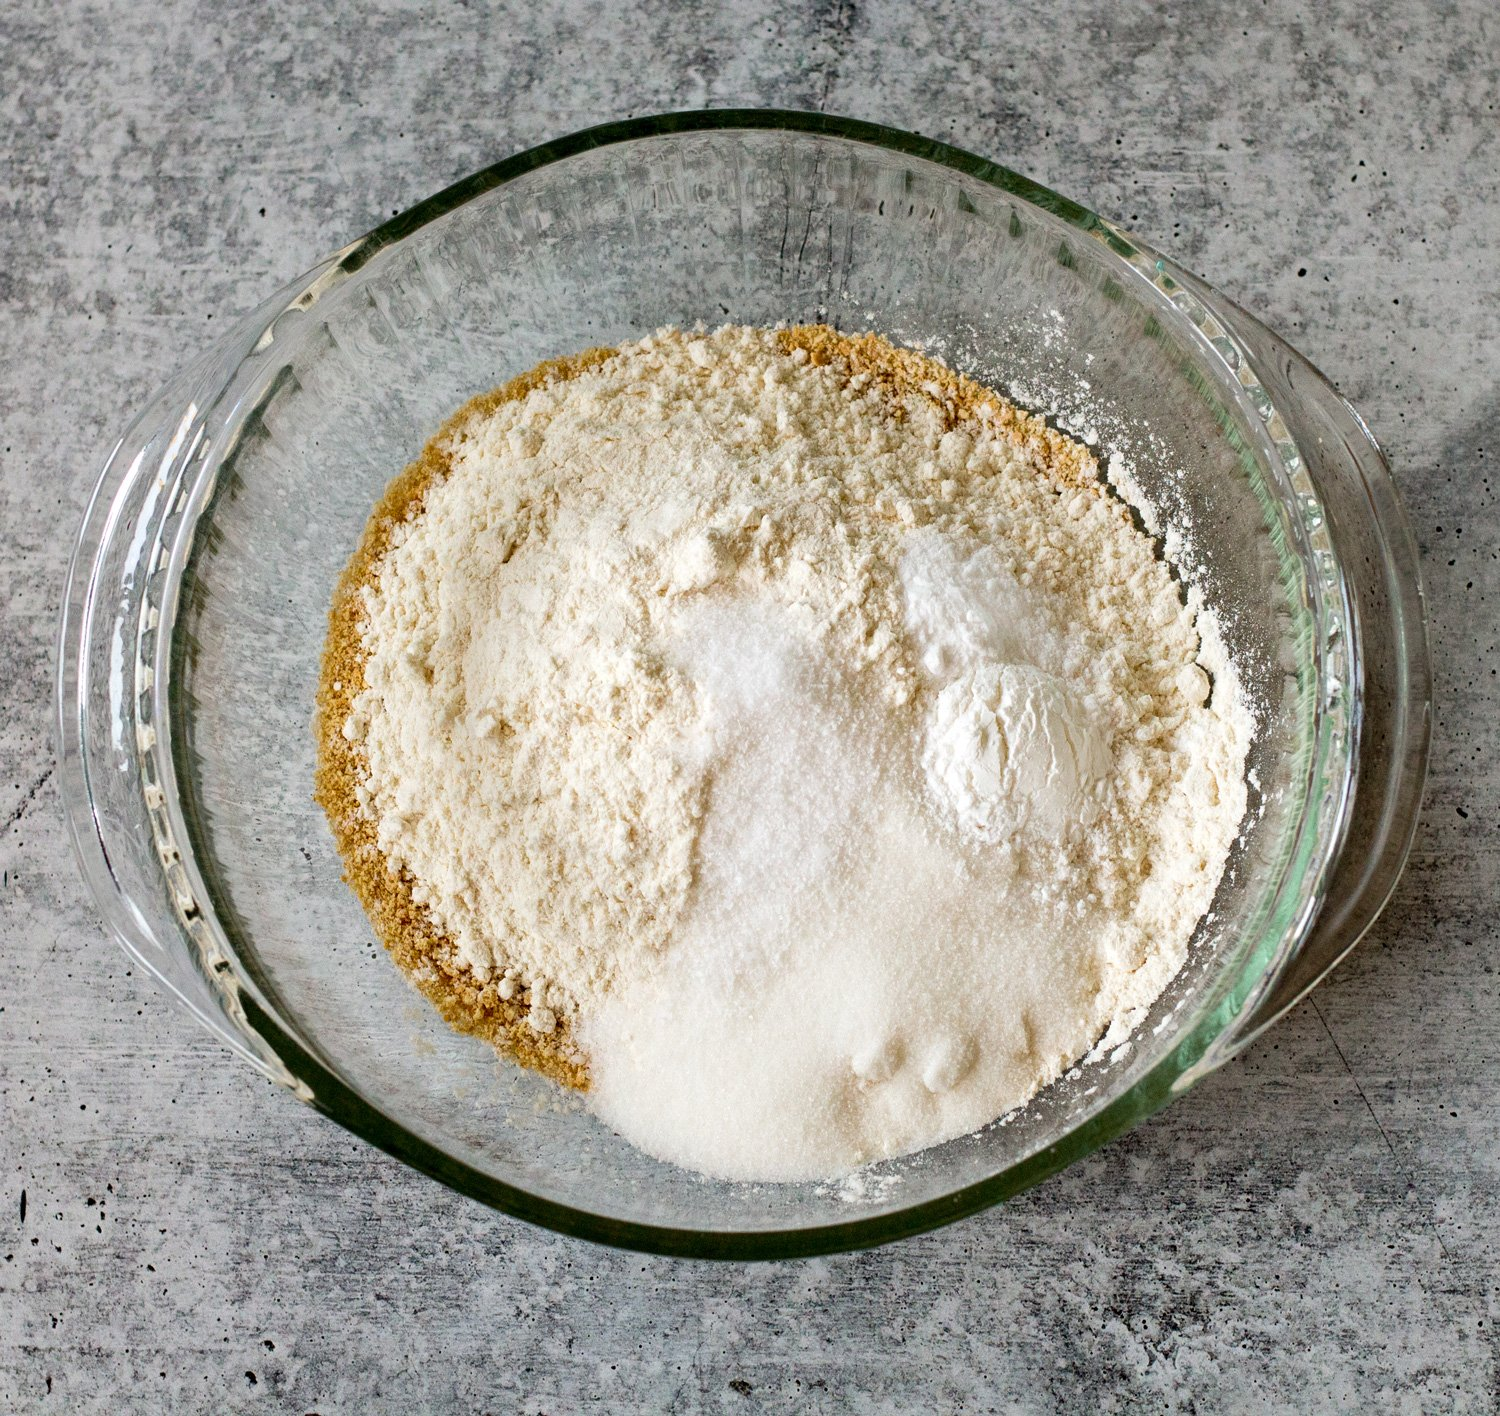 Crushed Graham Crackers, Flour and other pancake ingredients in a mixing bowl.